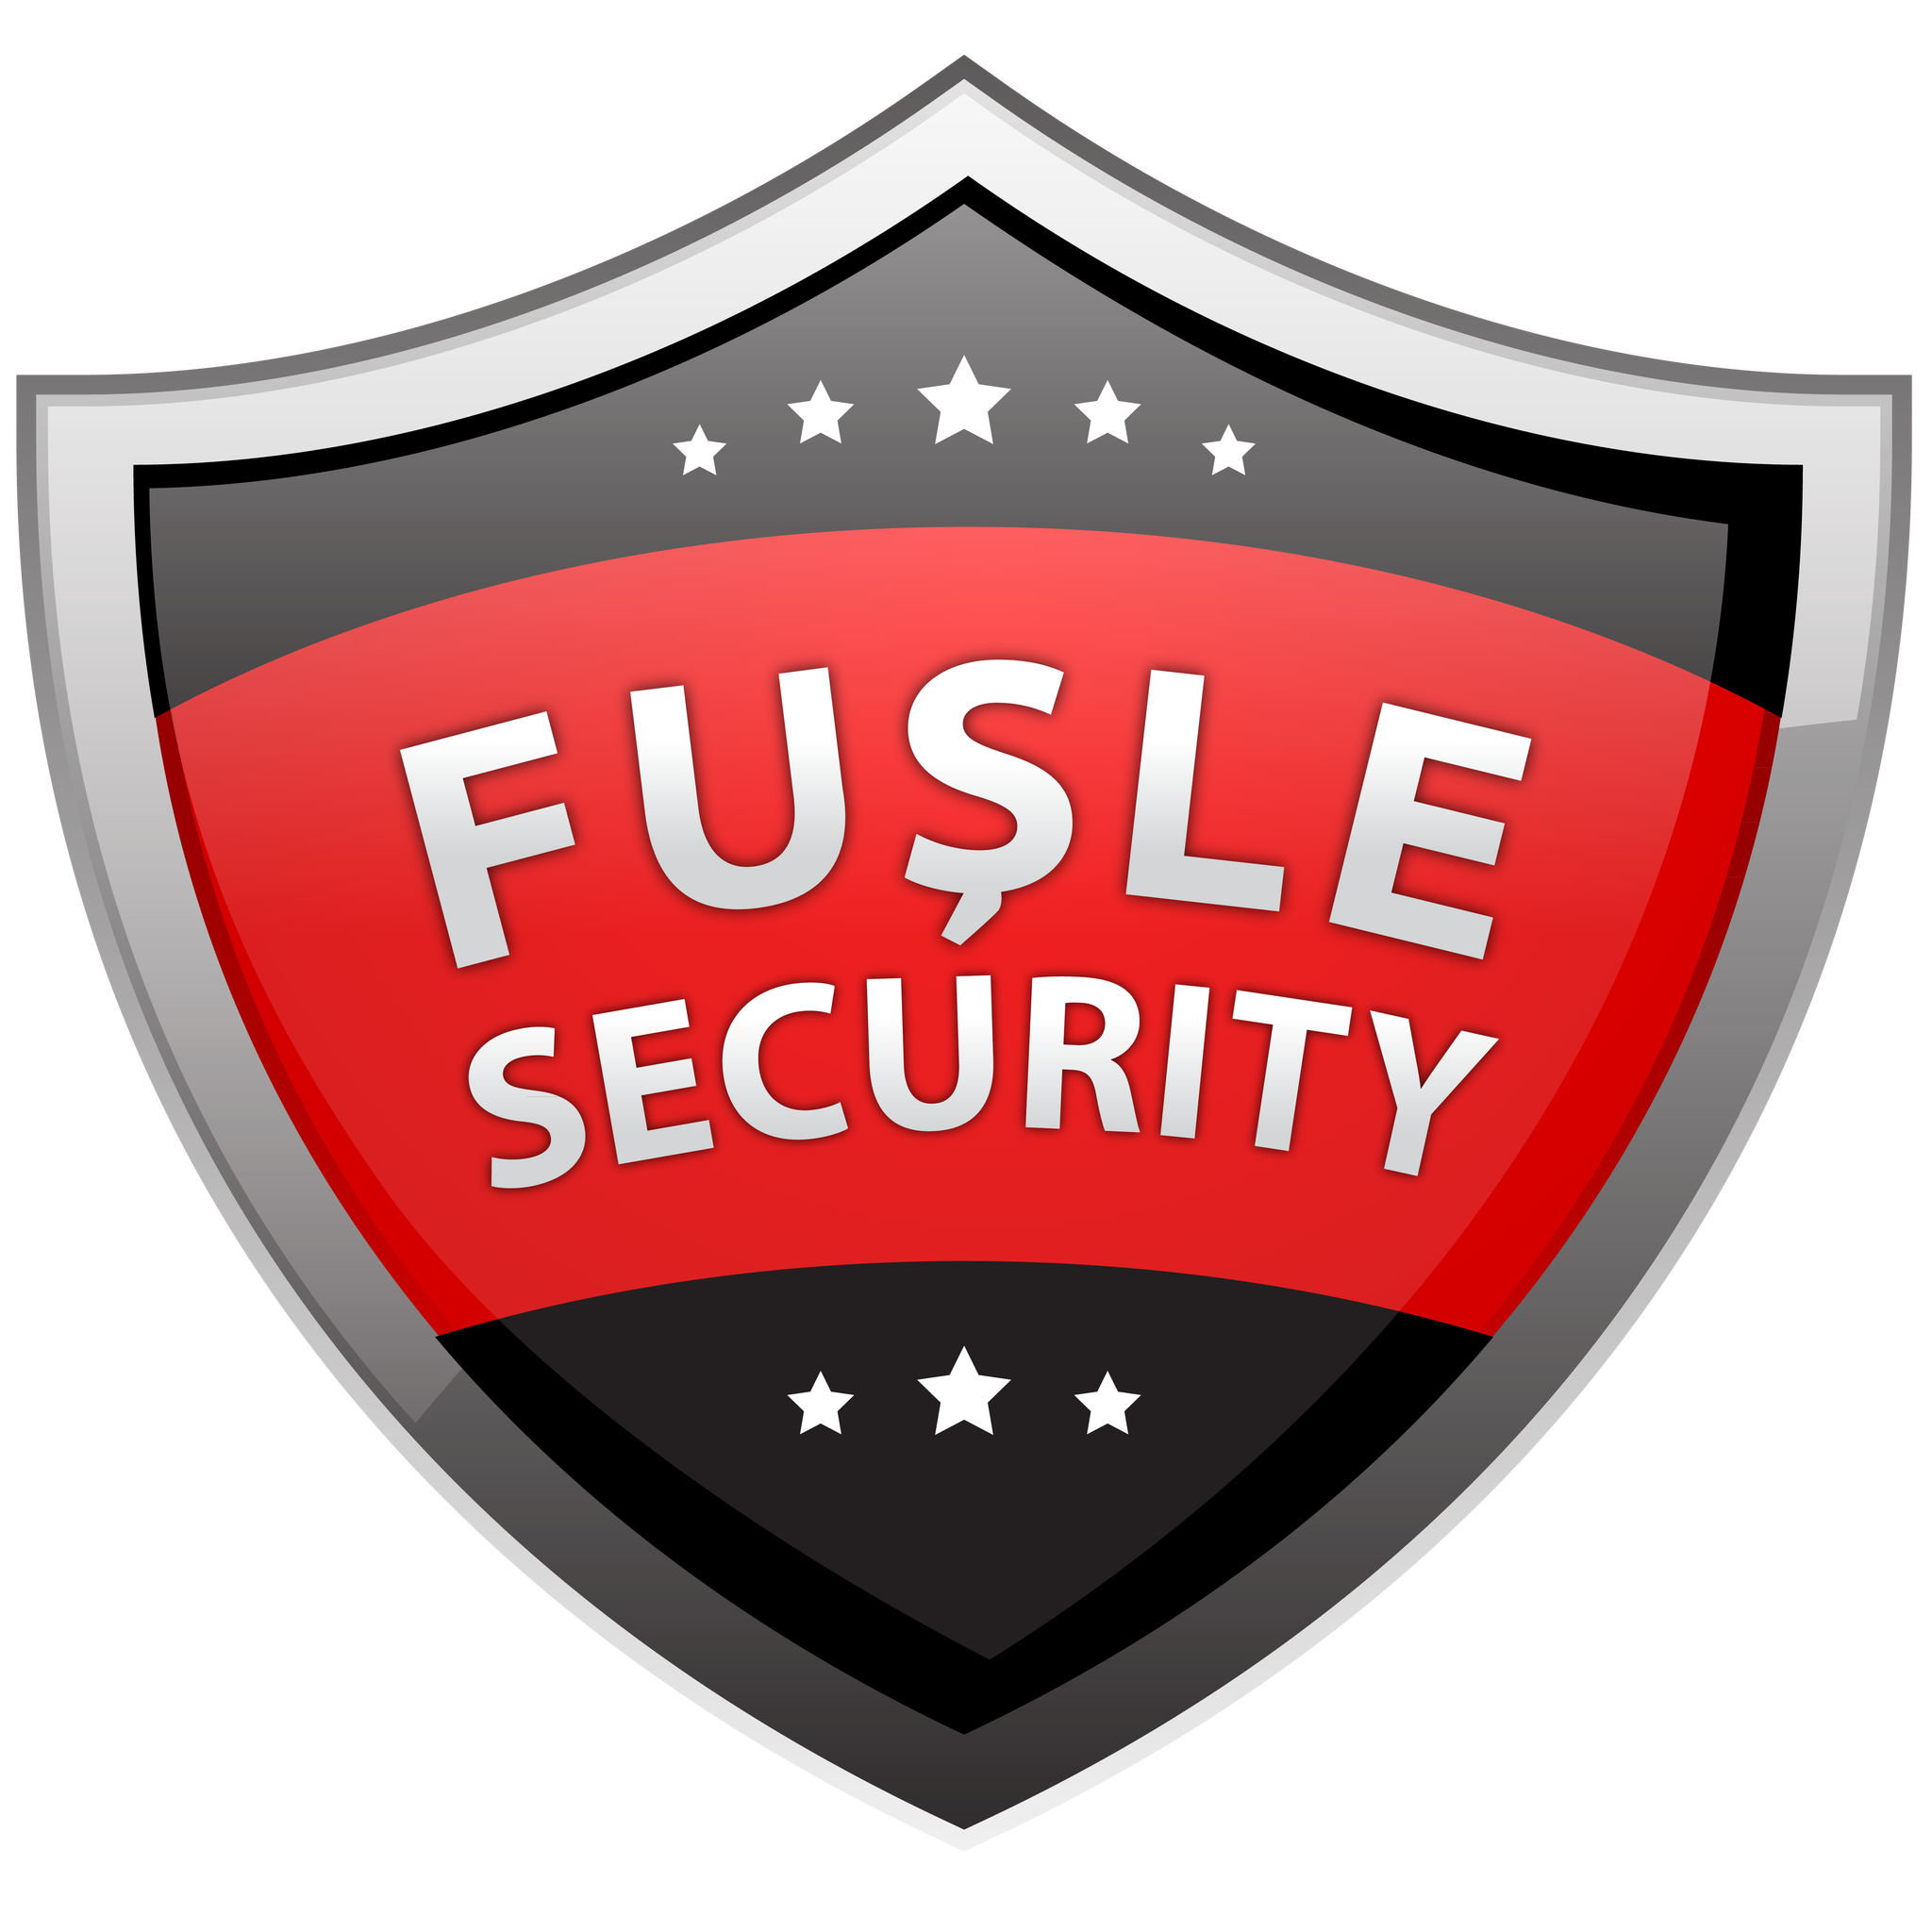 Fusle Security